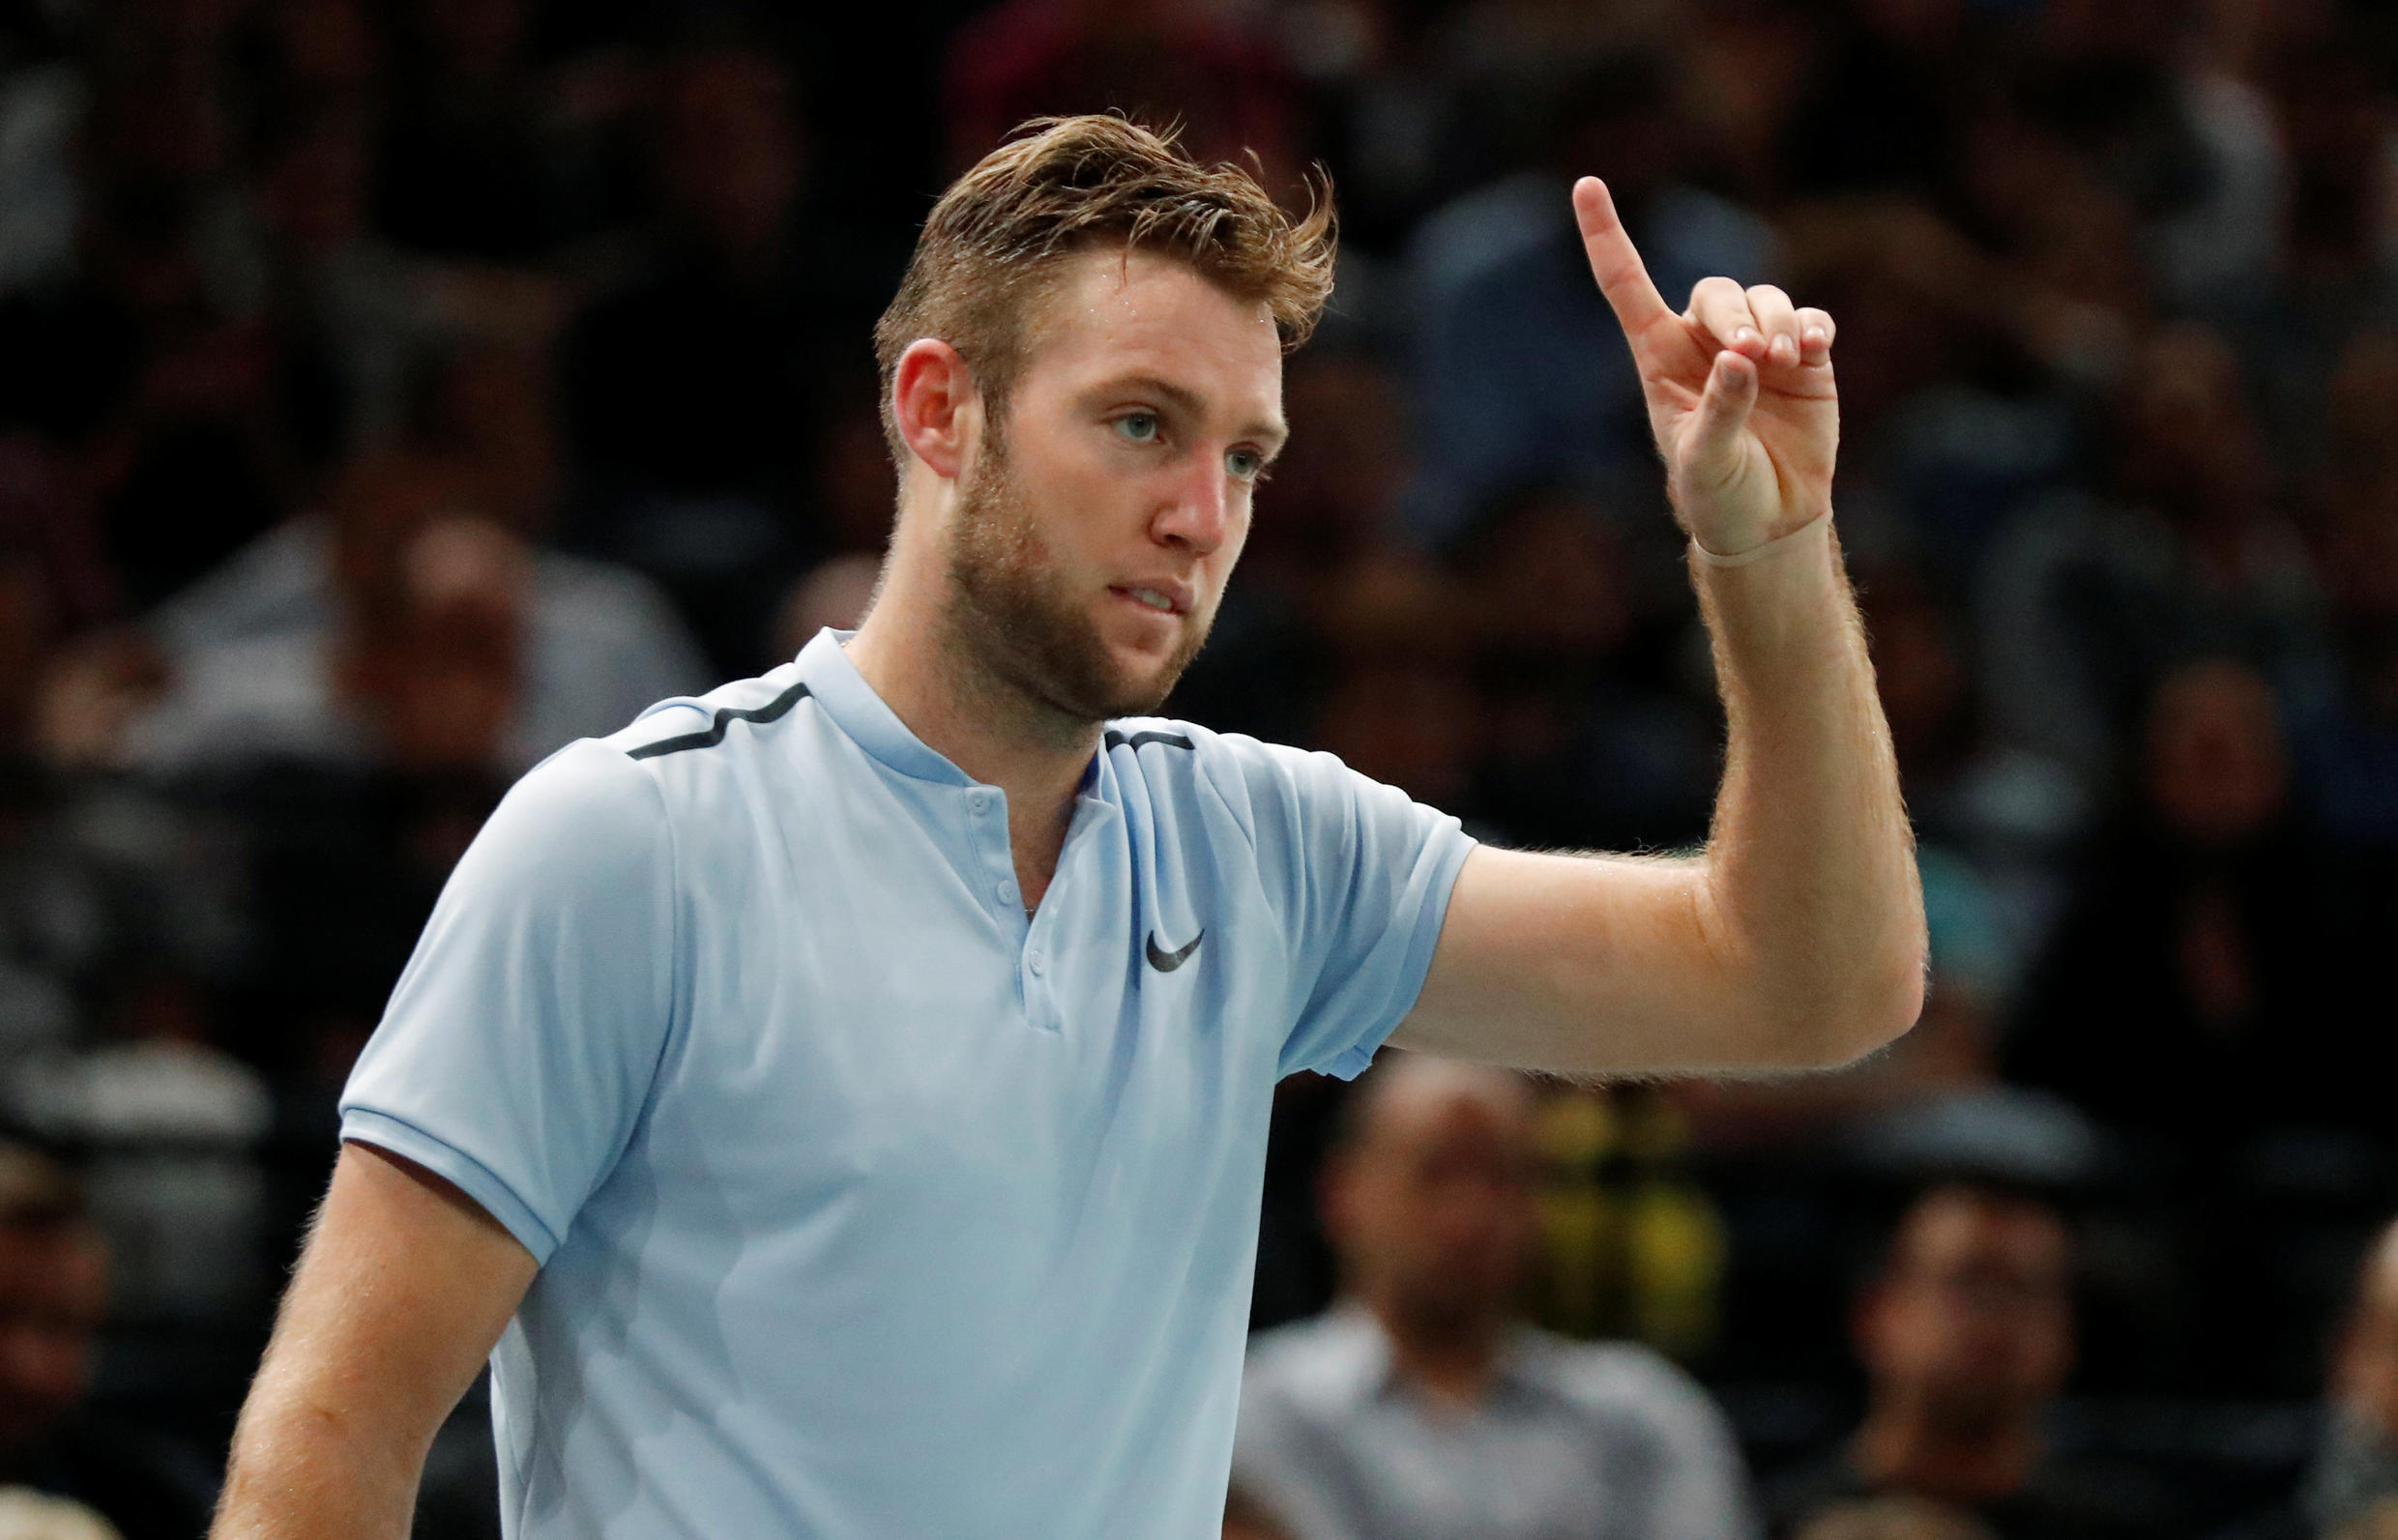 Jack Sock ousted the French veteran Julien Benneteau to reach the Paris Masters final.